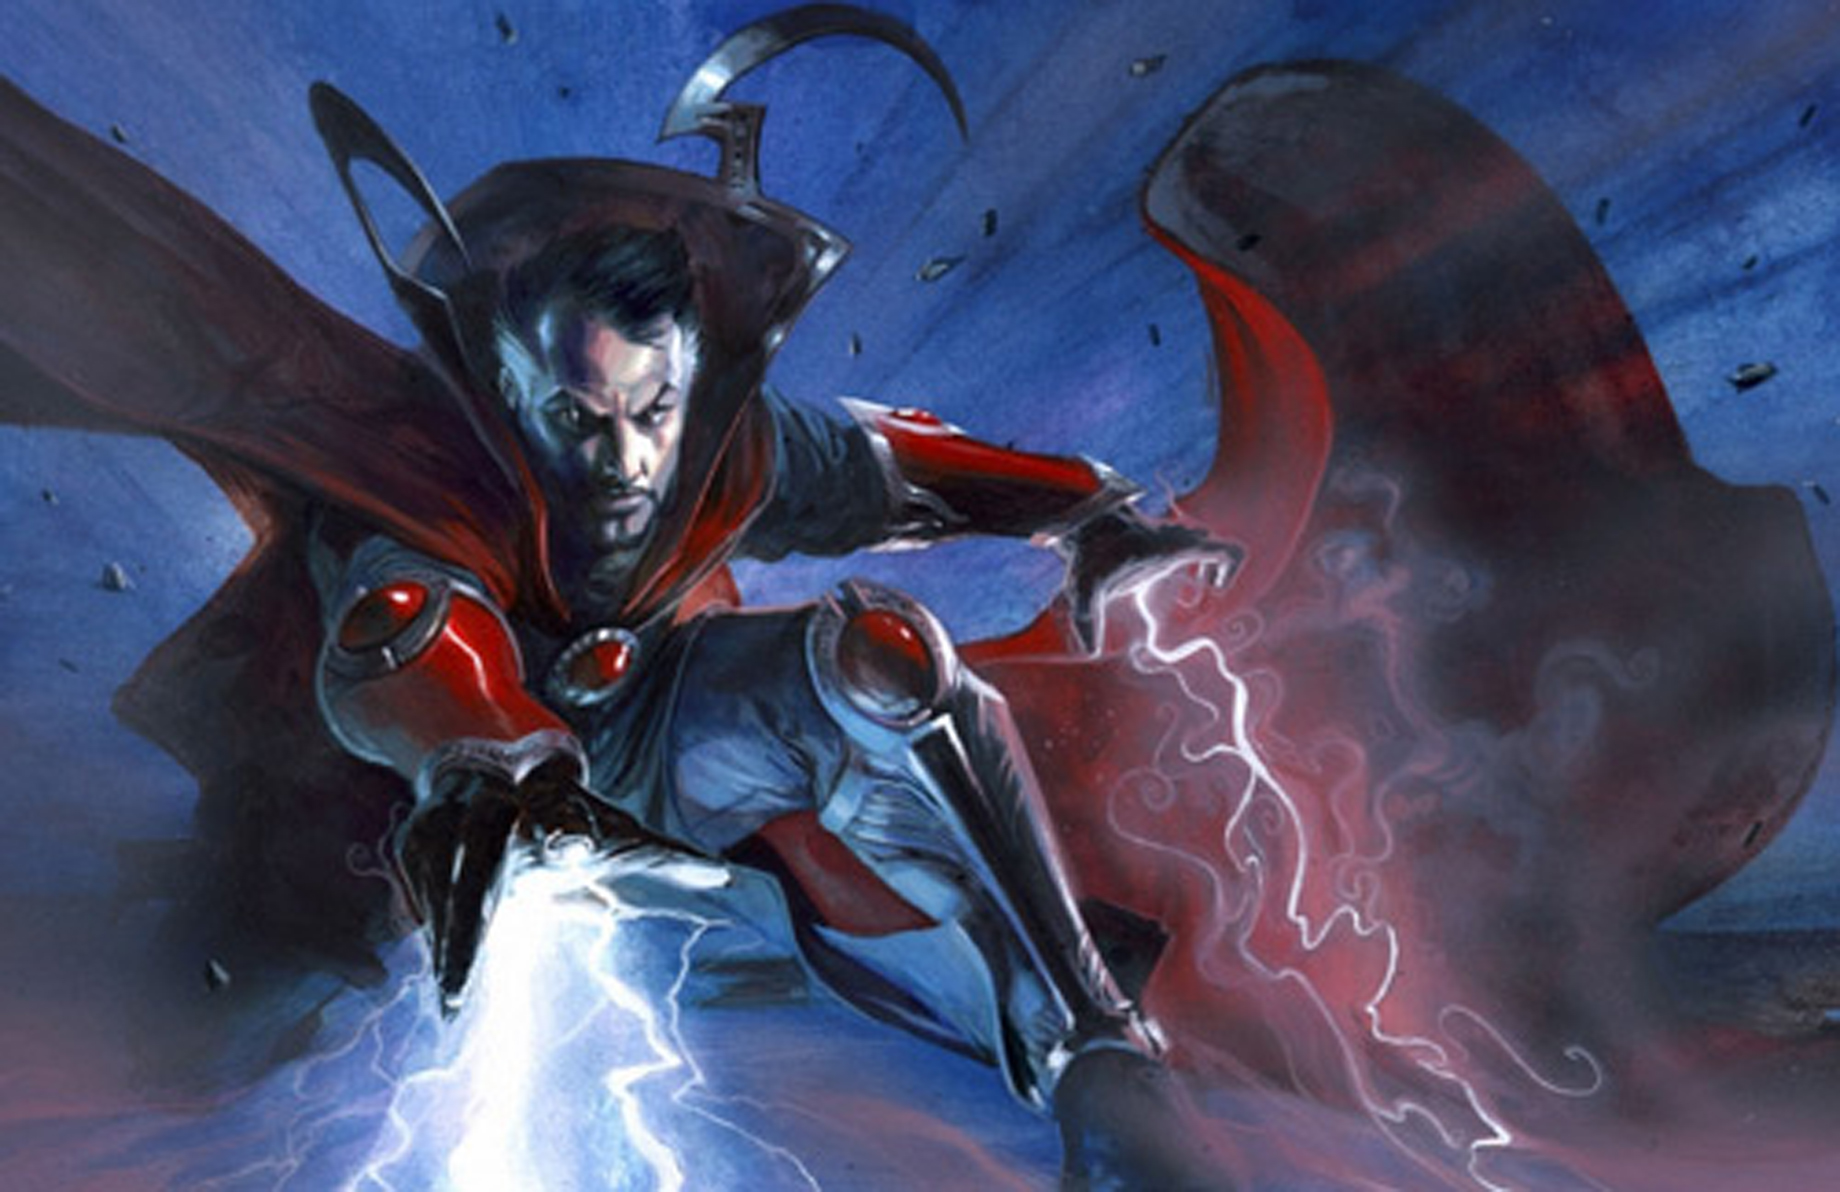 DOCTOR STRANGE CONJURES HIPPIE WITCH GAAP | FAUSTUS CROW